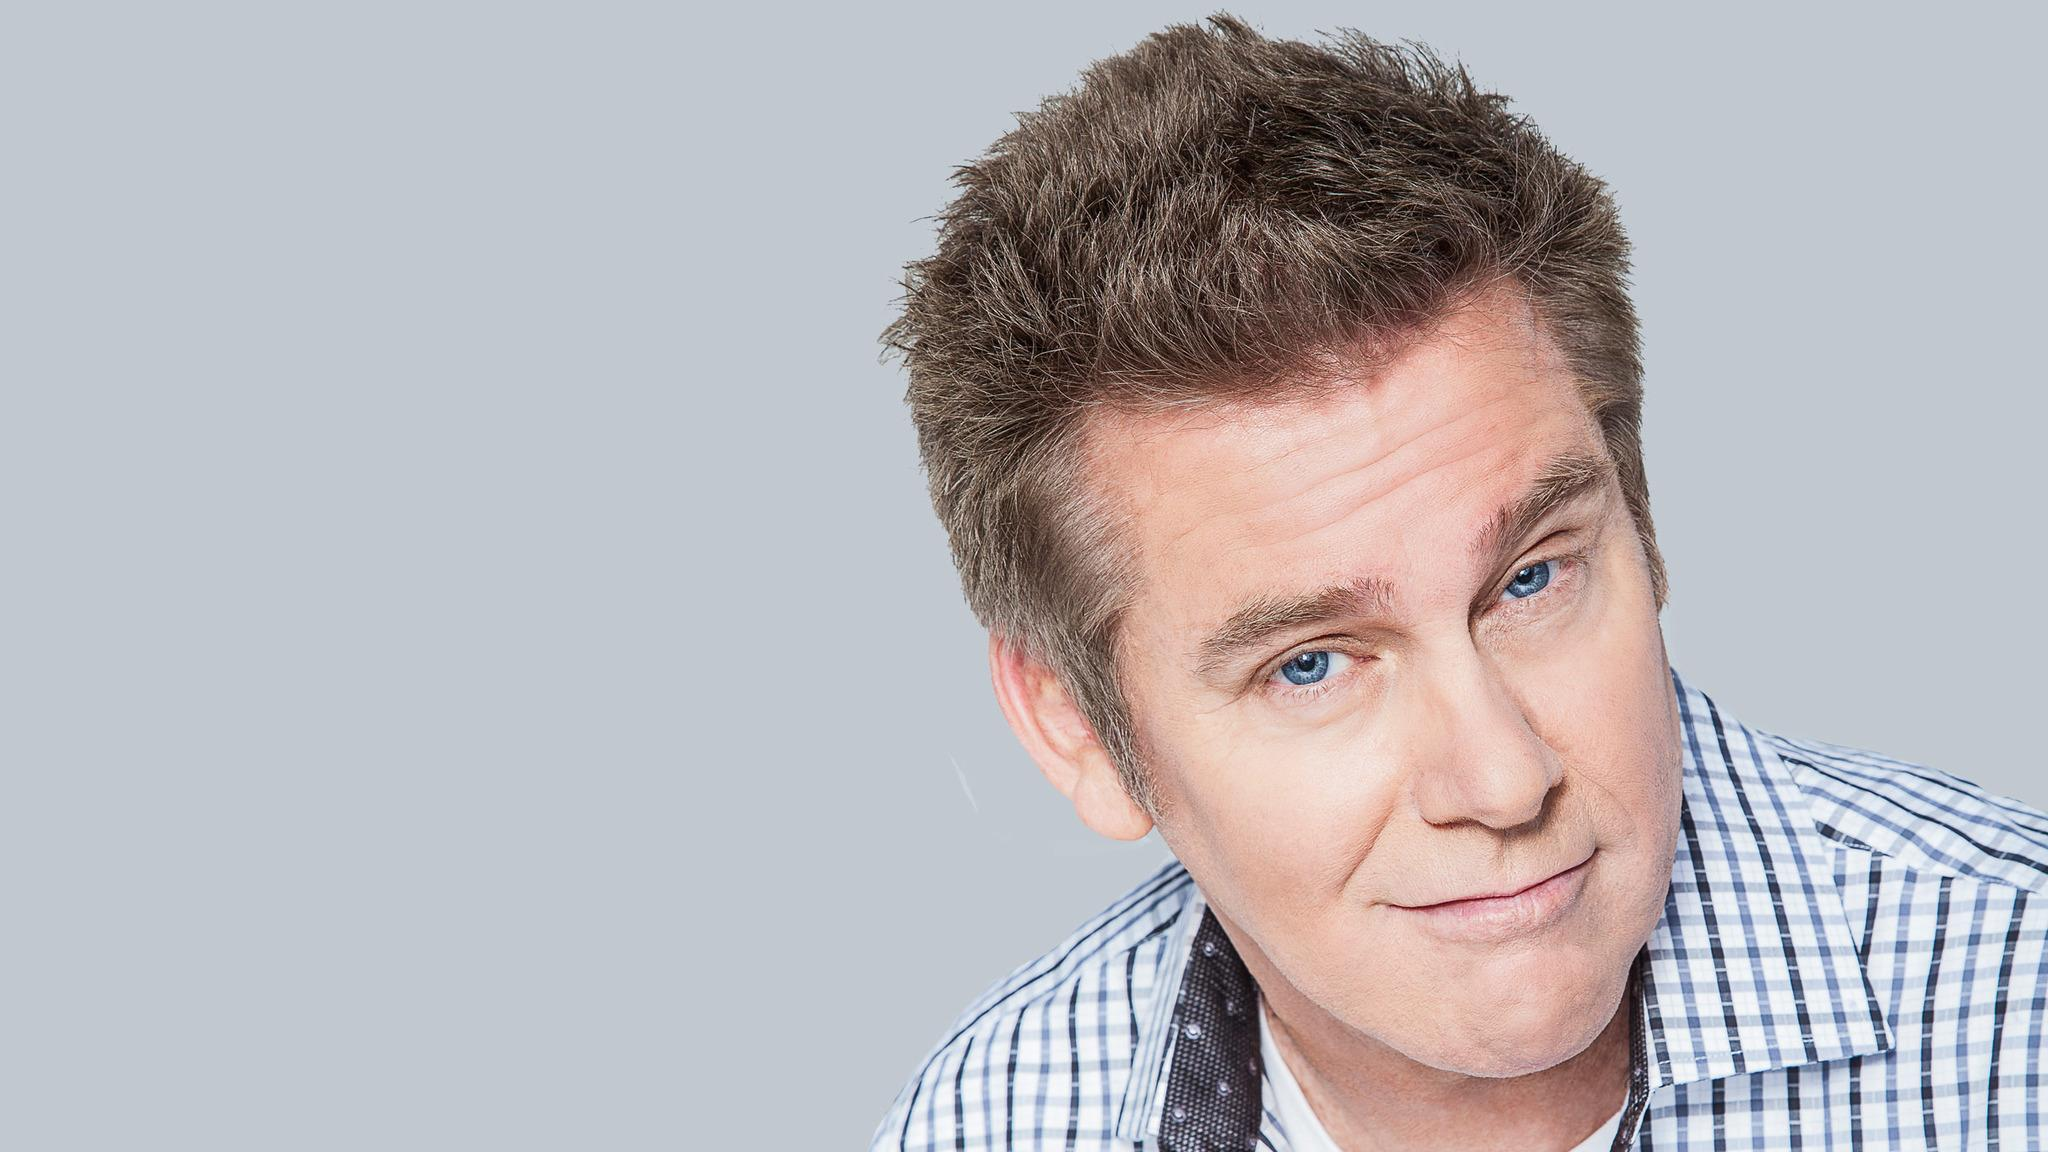 Brian Regan Live at HOYT SHERMAN PLACE